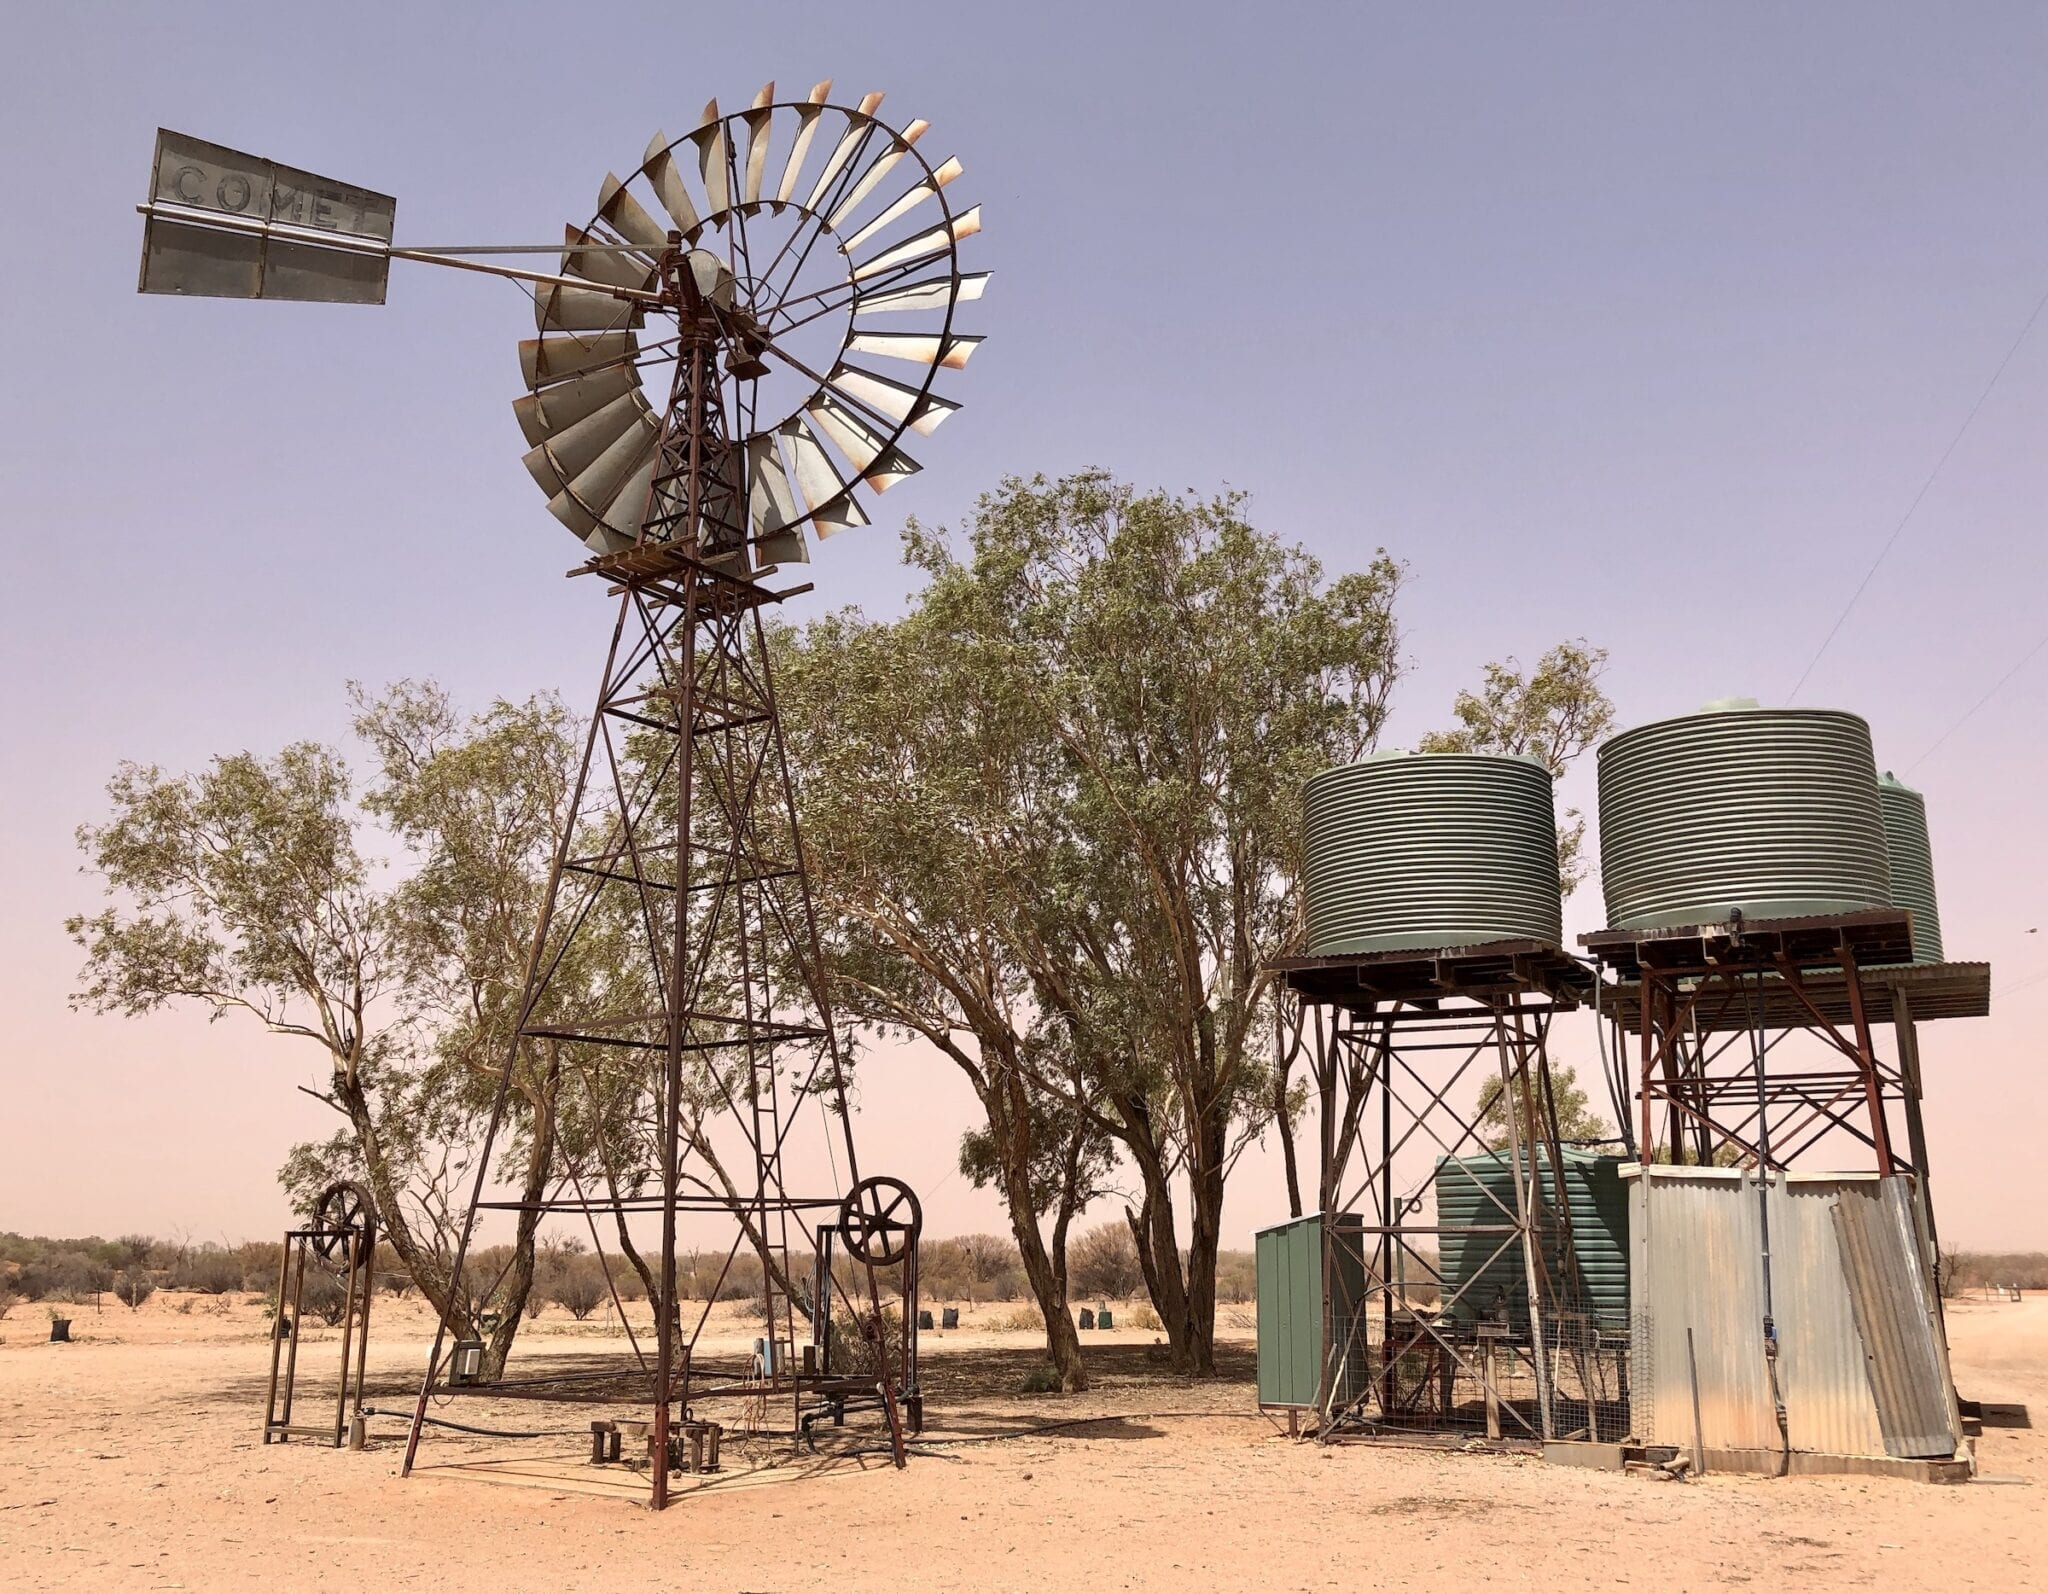 An Outback Caretaker Role With A Difference!